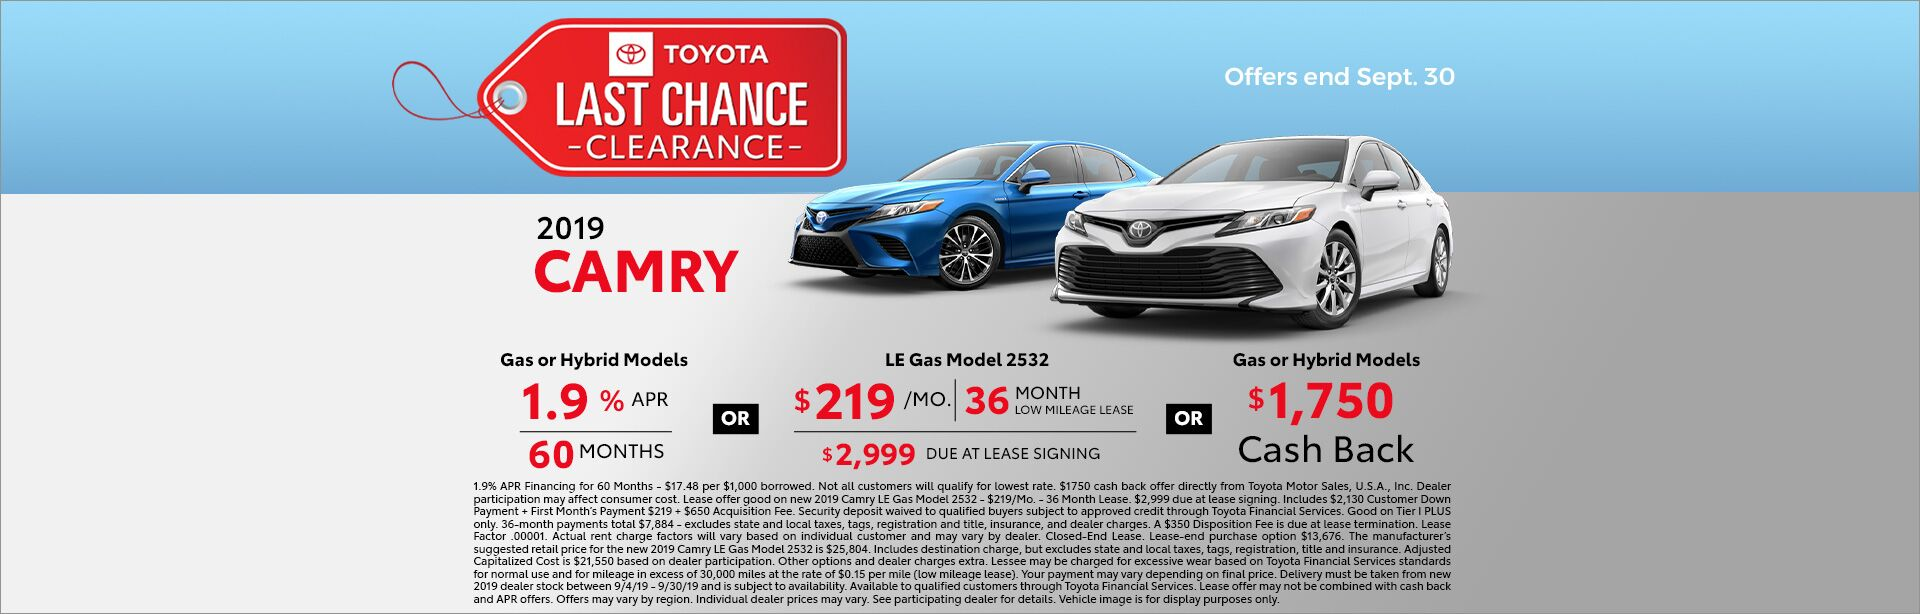 Camry Clearance